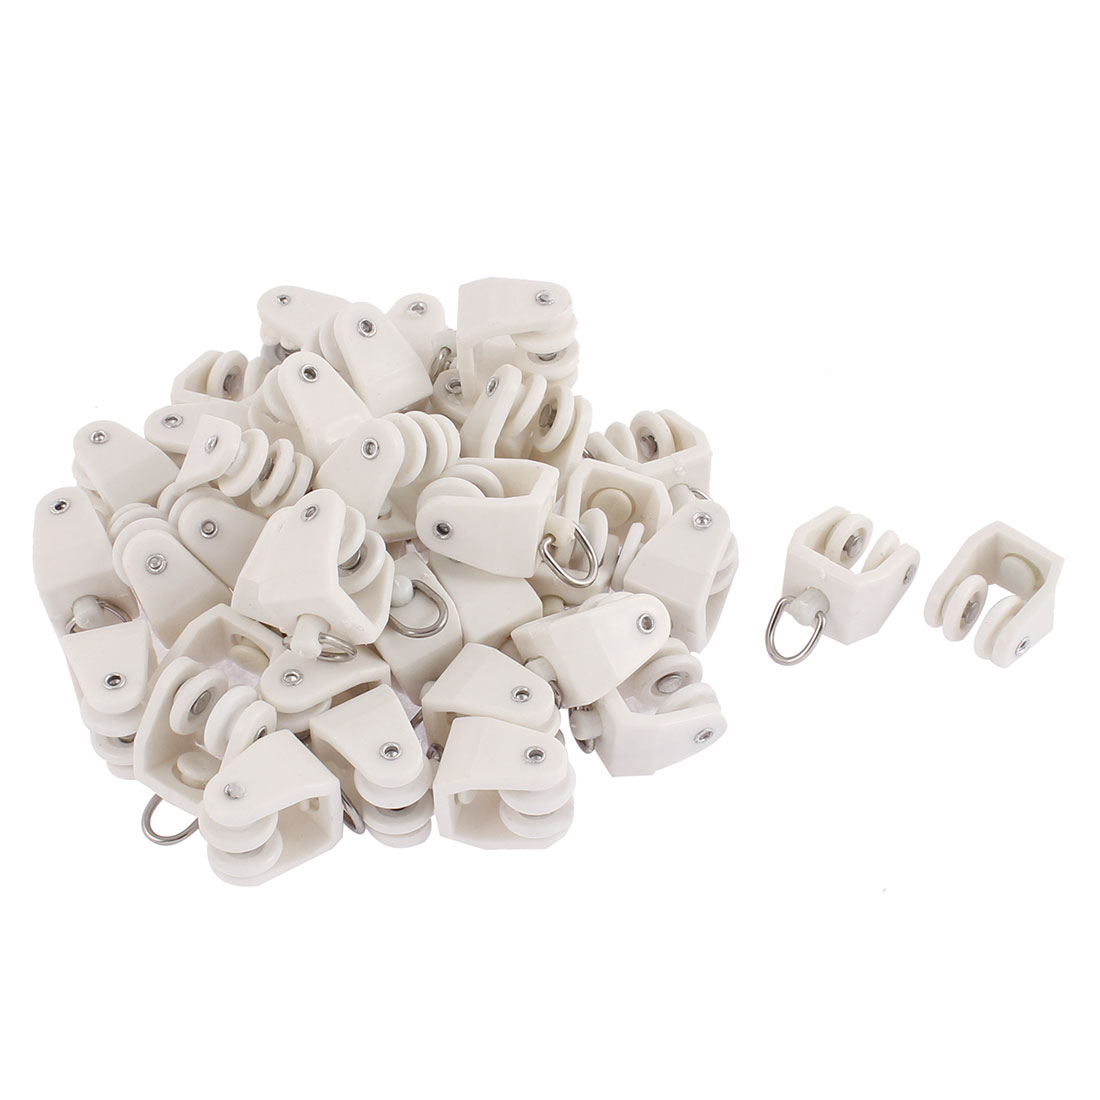 Plastic Swivel Eye Ring Curtain Track Rail Rollers Carrier White 40 Pcs